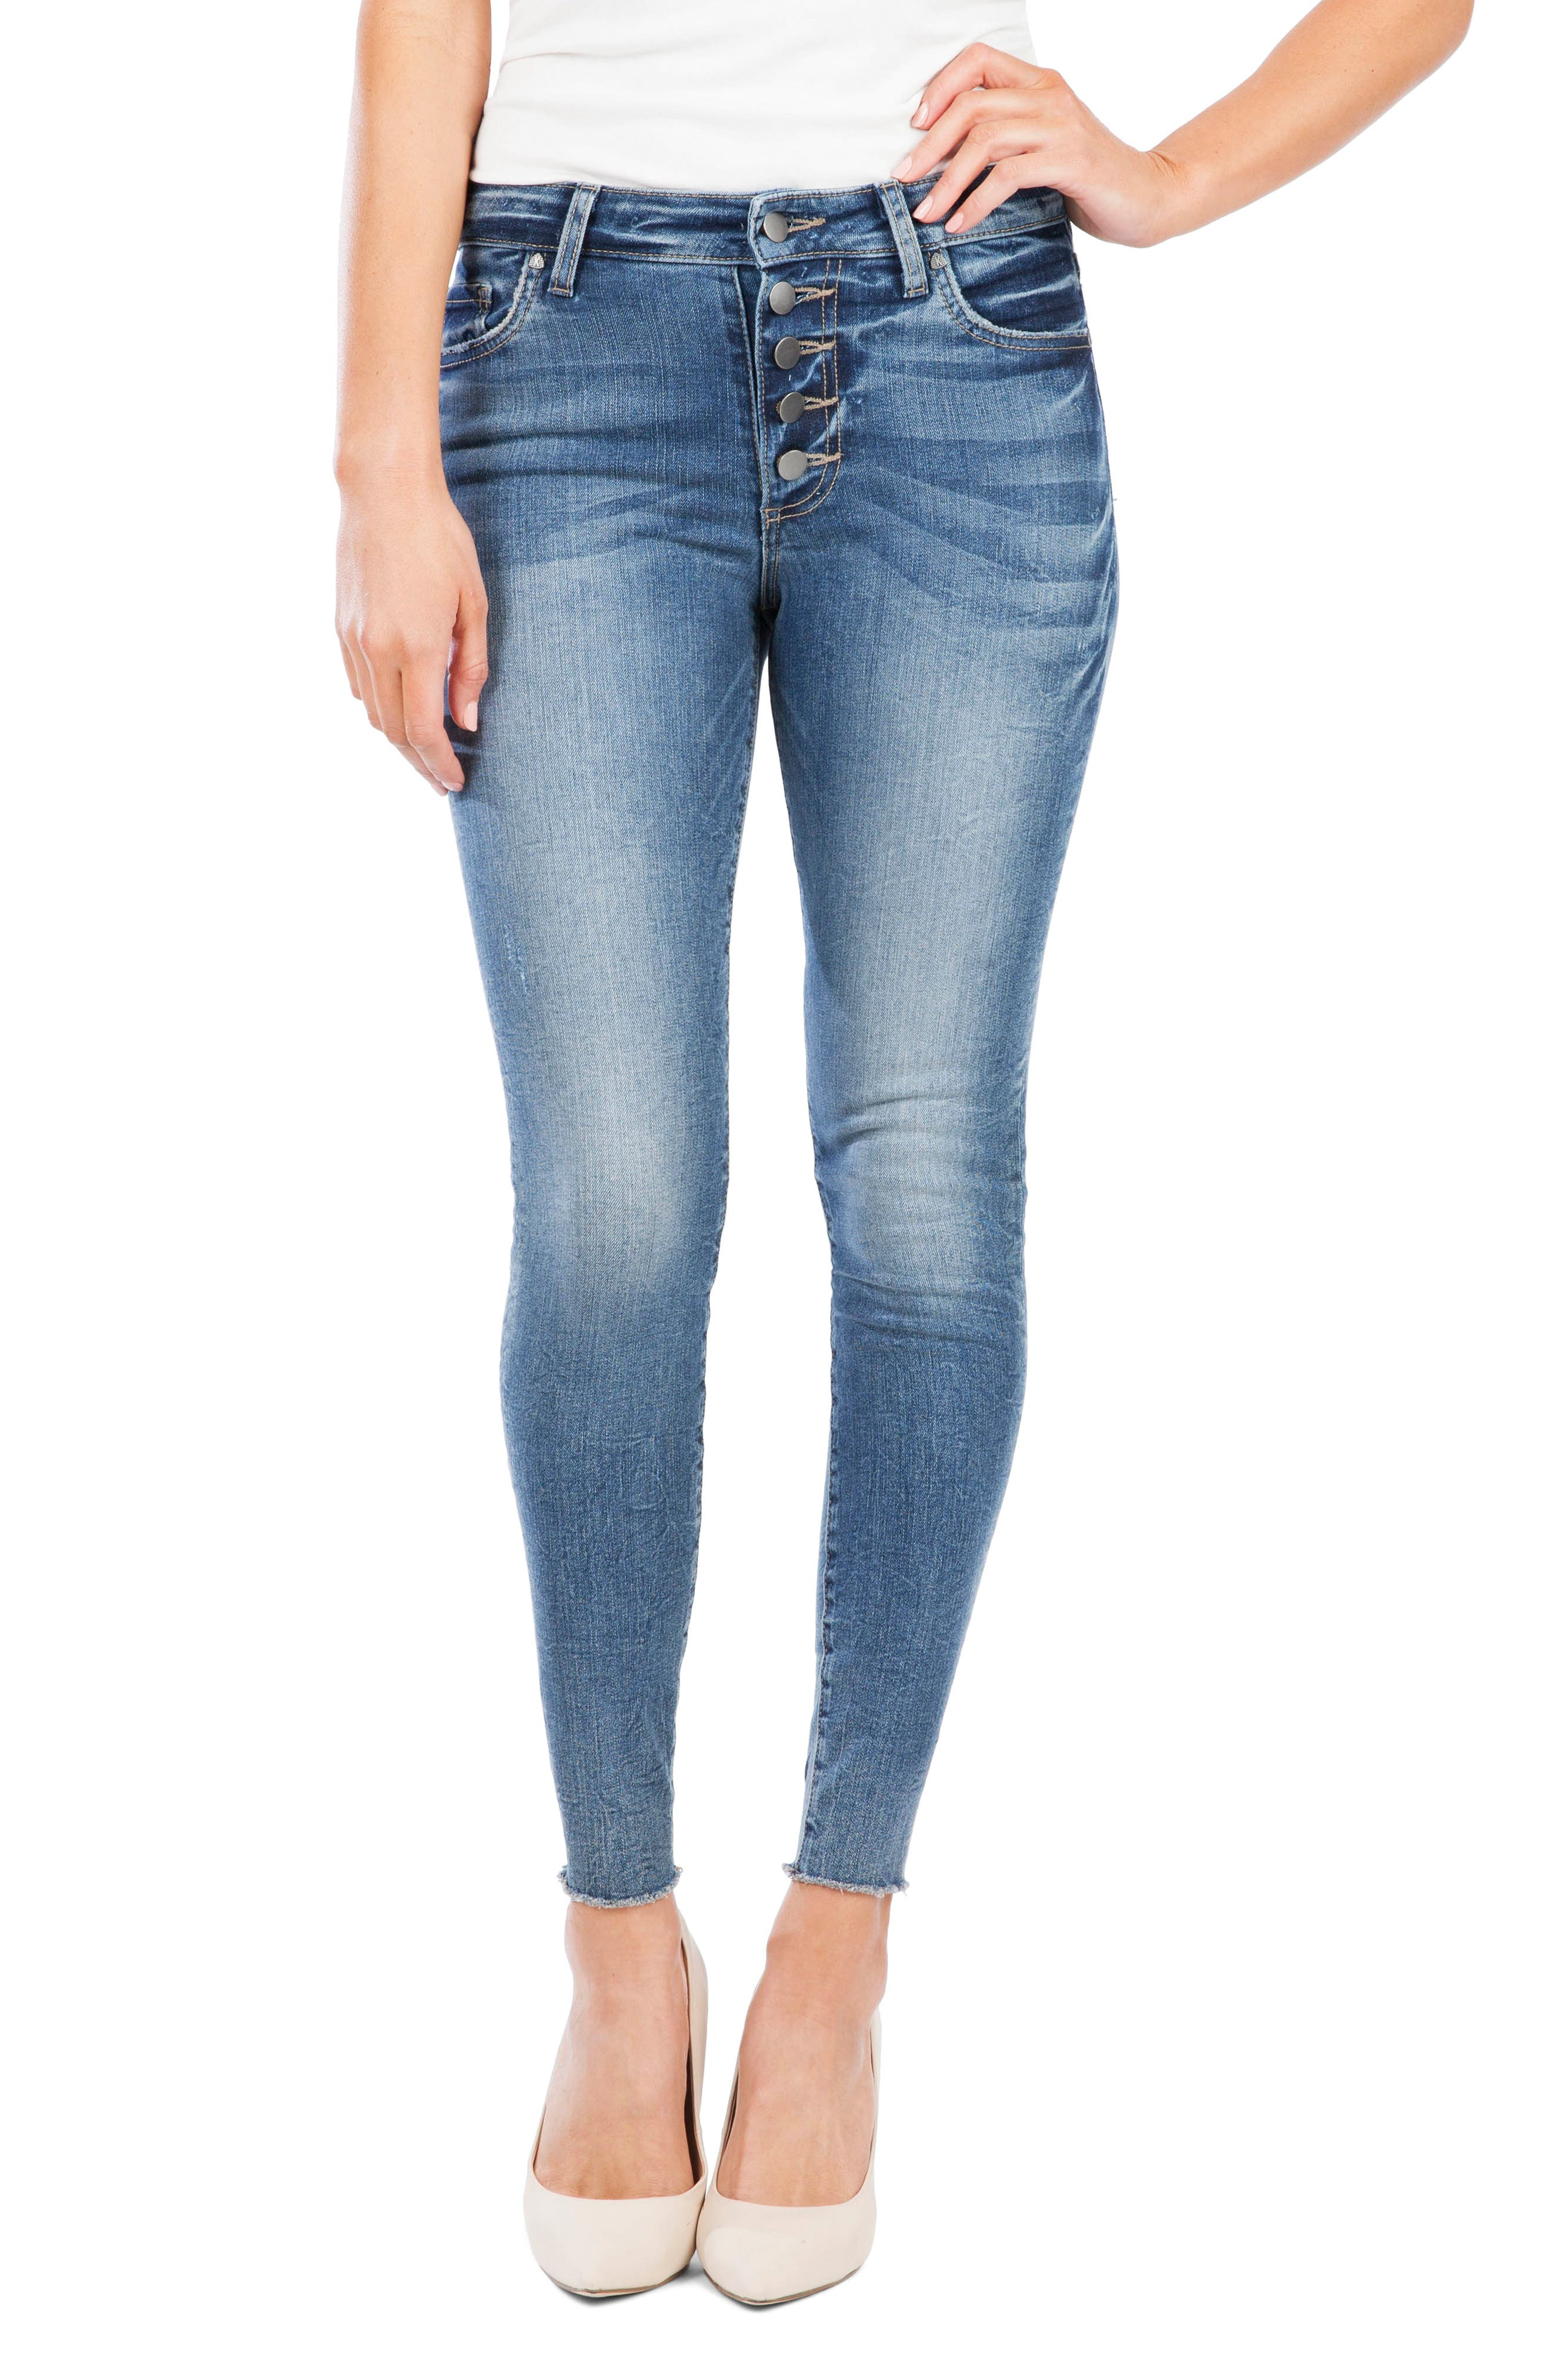 Kut From The Kloth Donna Button Fly Skinny Jeans, Blue